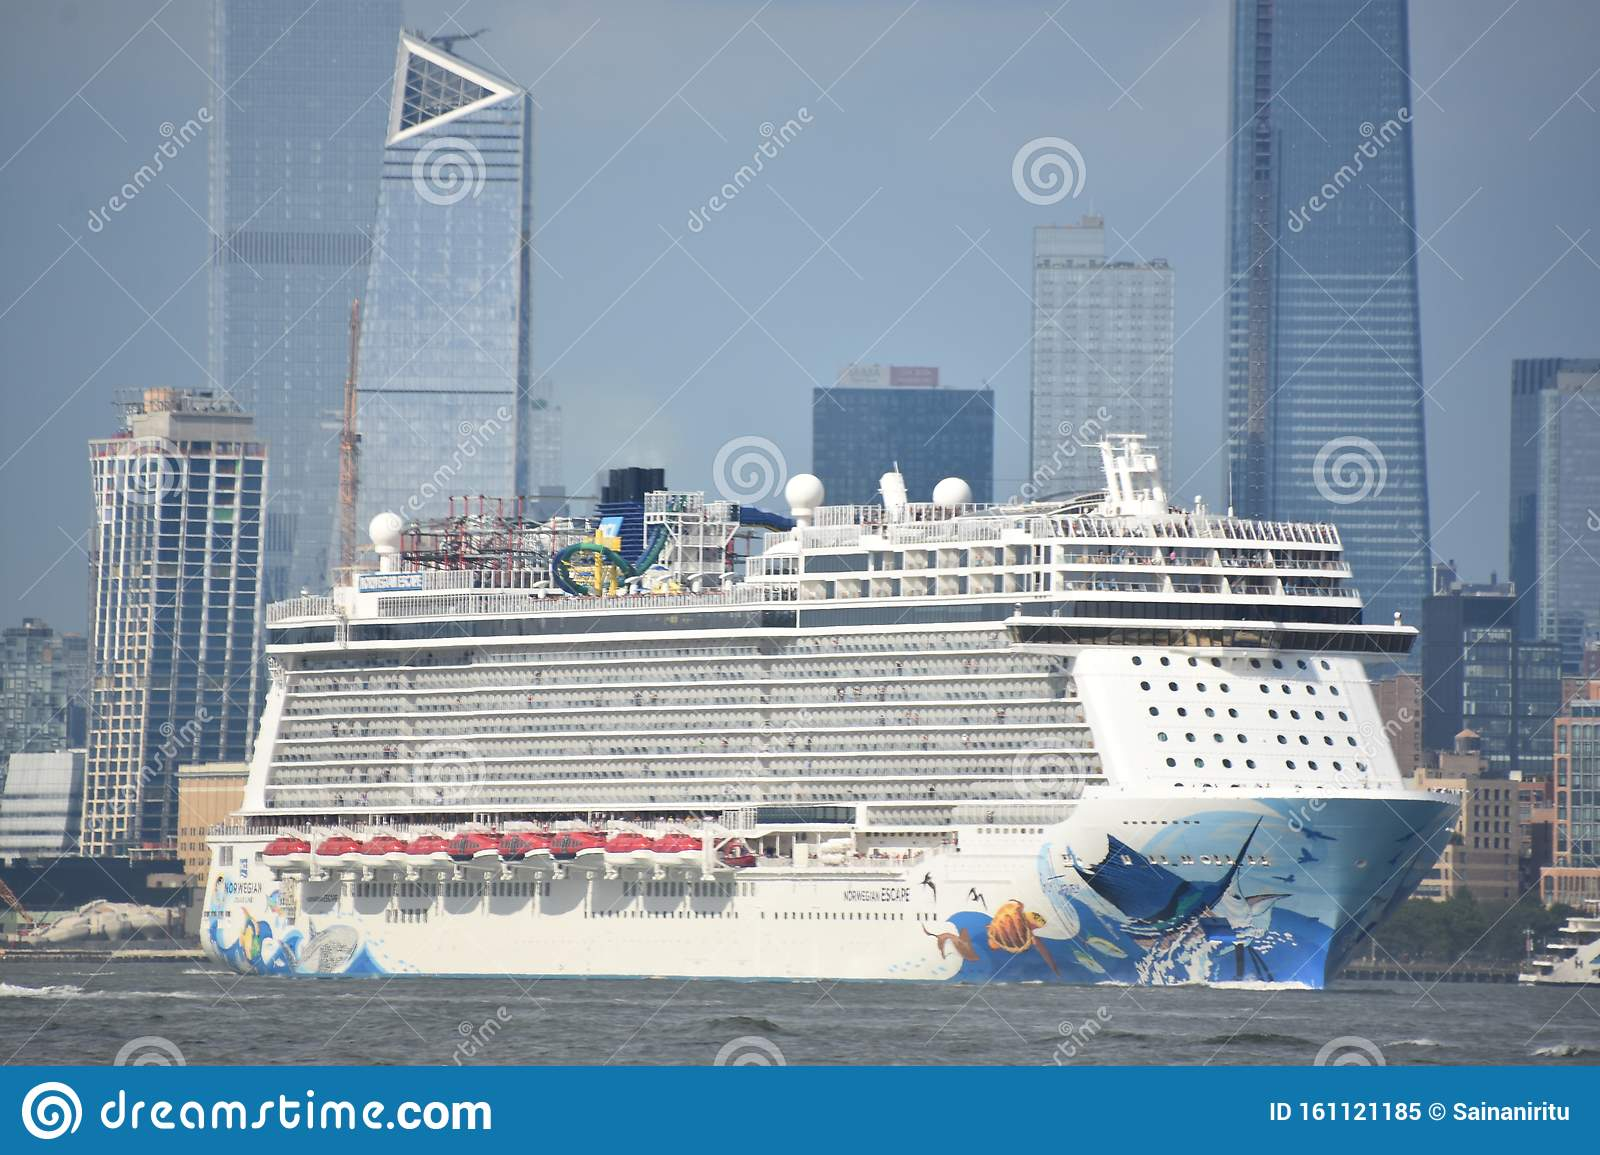 Norwegian Escape Cruise Ship Editorial Image - Image of hull, nautical:  161121185